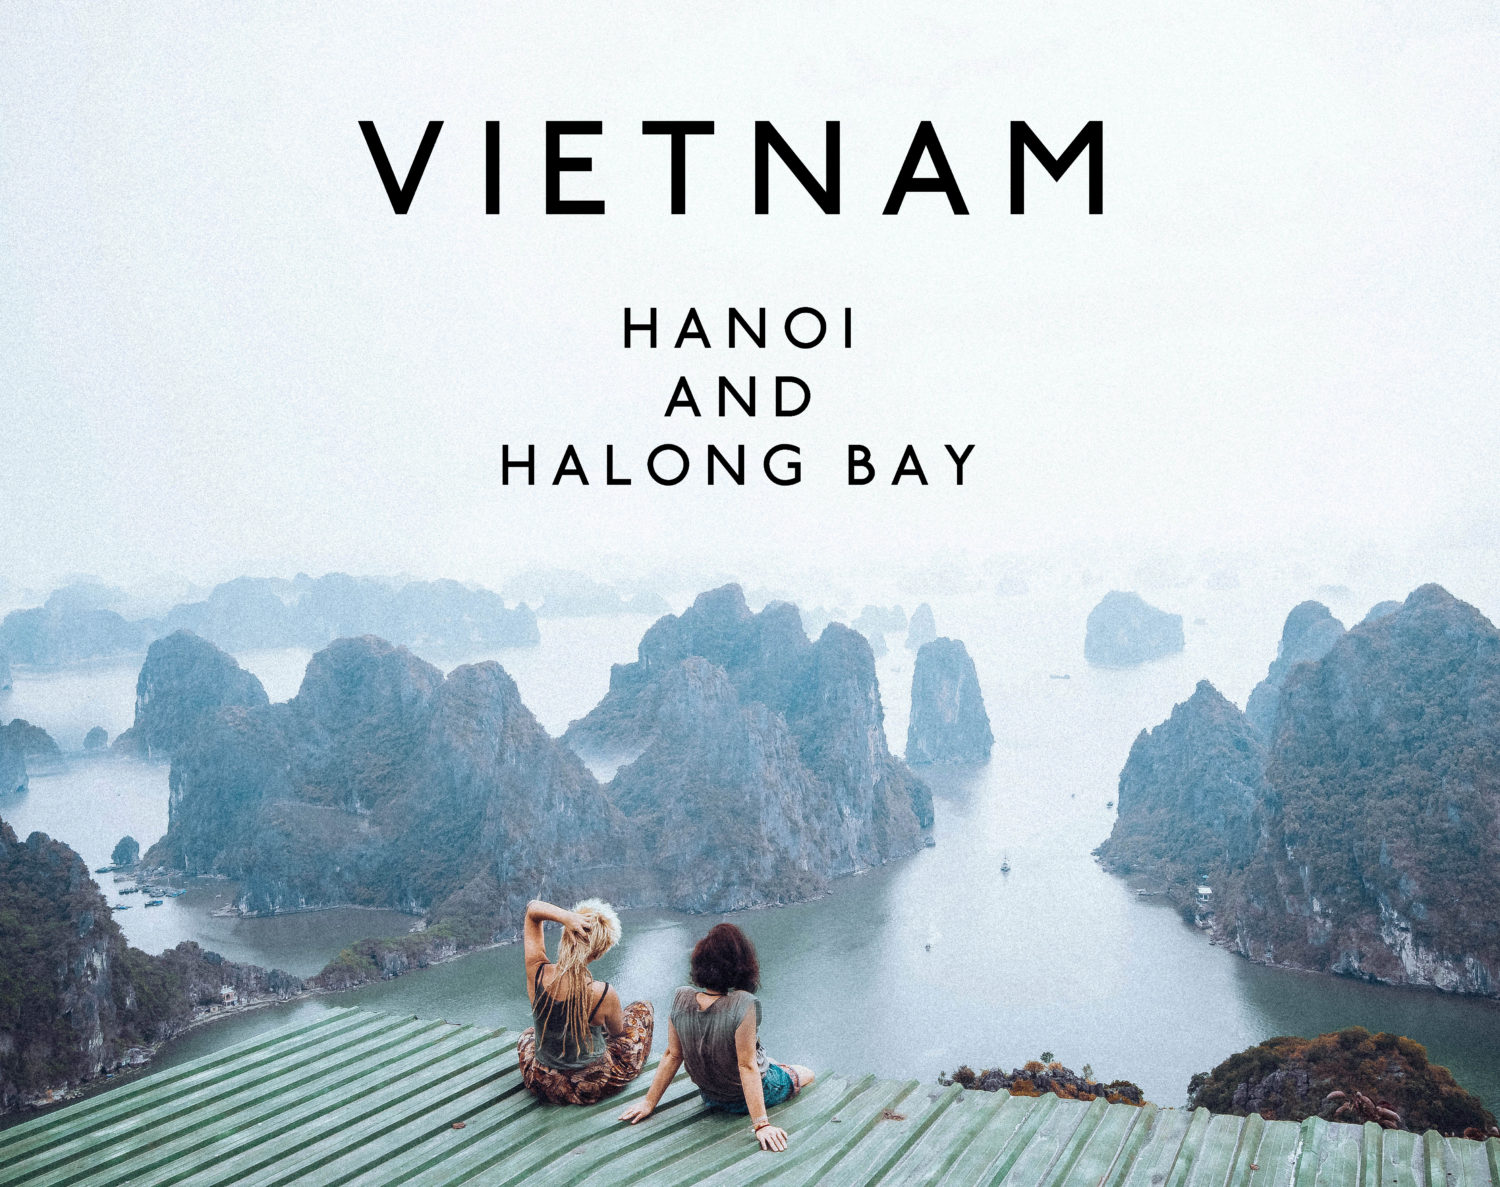 sitting in front of the famous halong bay on the secret mountain found not very known for tourists